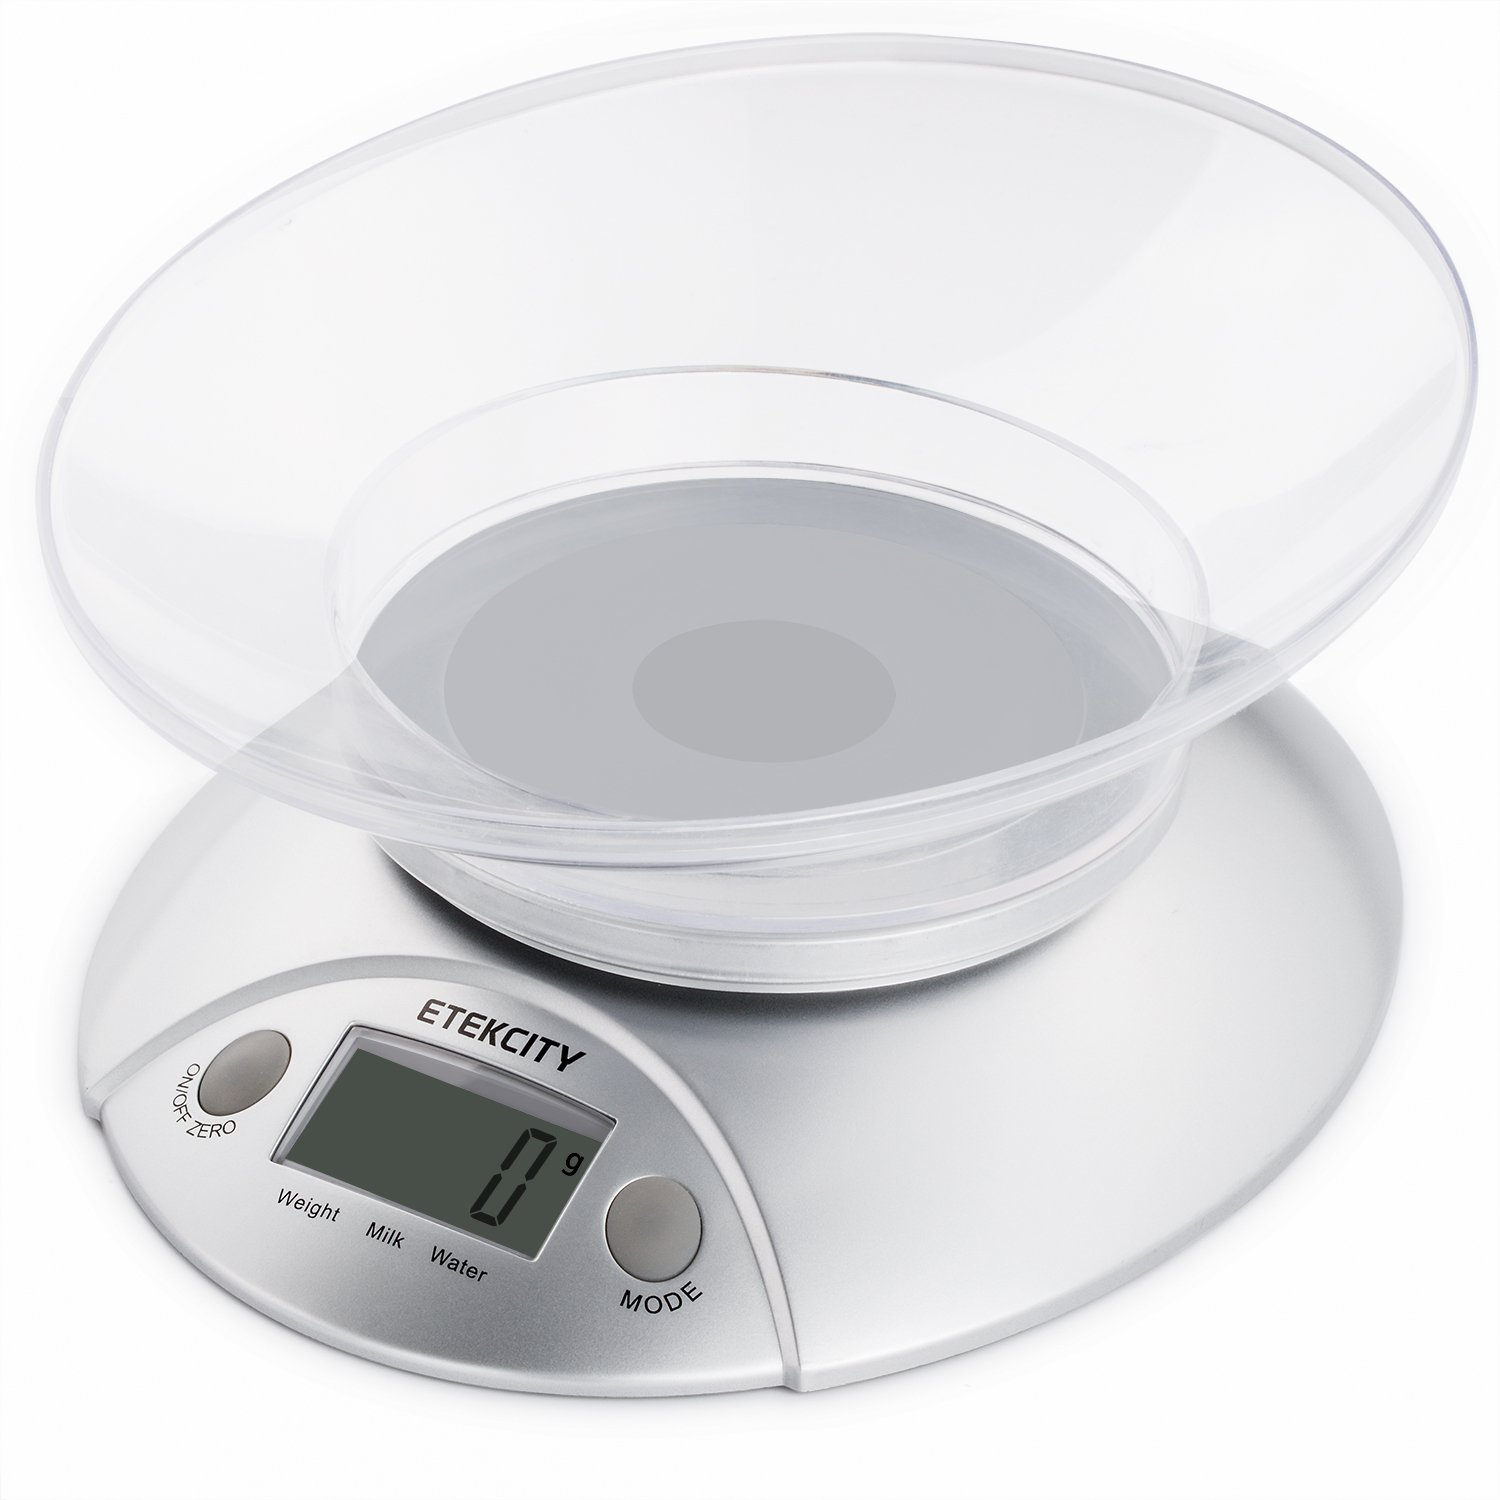 Small Kitchen Weighing Scales Amazoncom Etekcity Digital Food Scale And Multifunction Kitchen